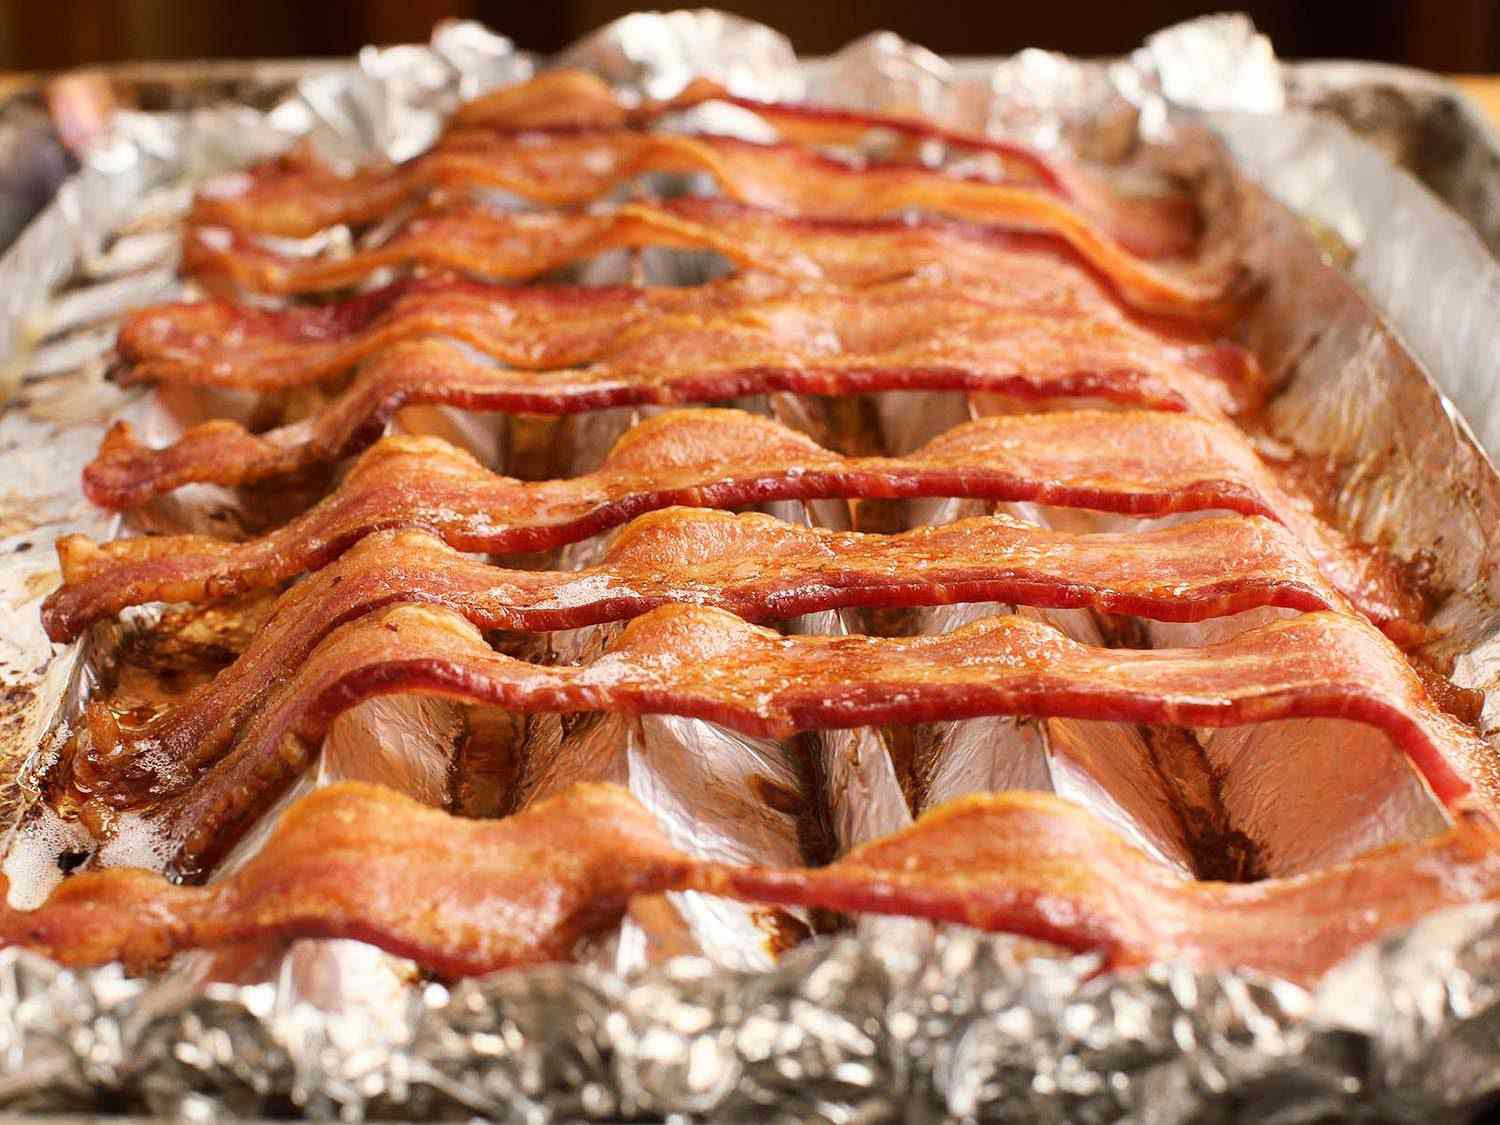 Close-up of strips of bacon on a pan lined with a corrugated piece of aluminum foil